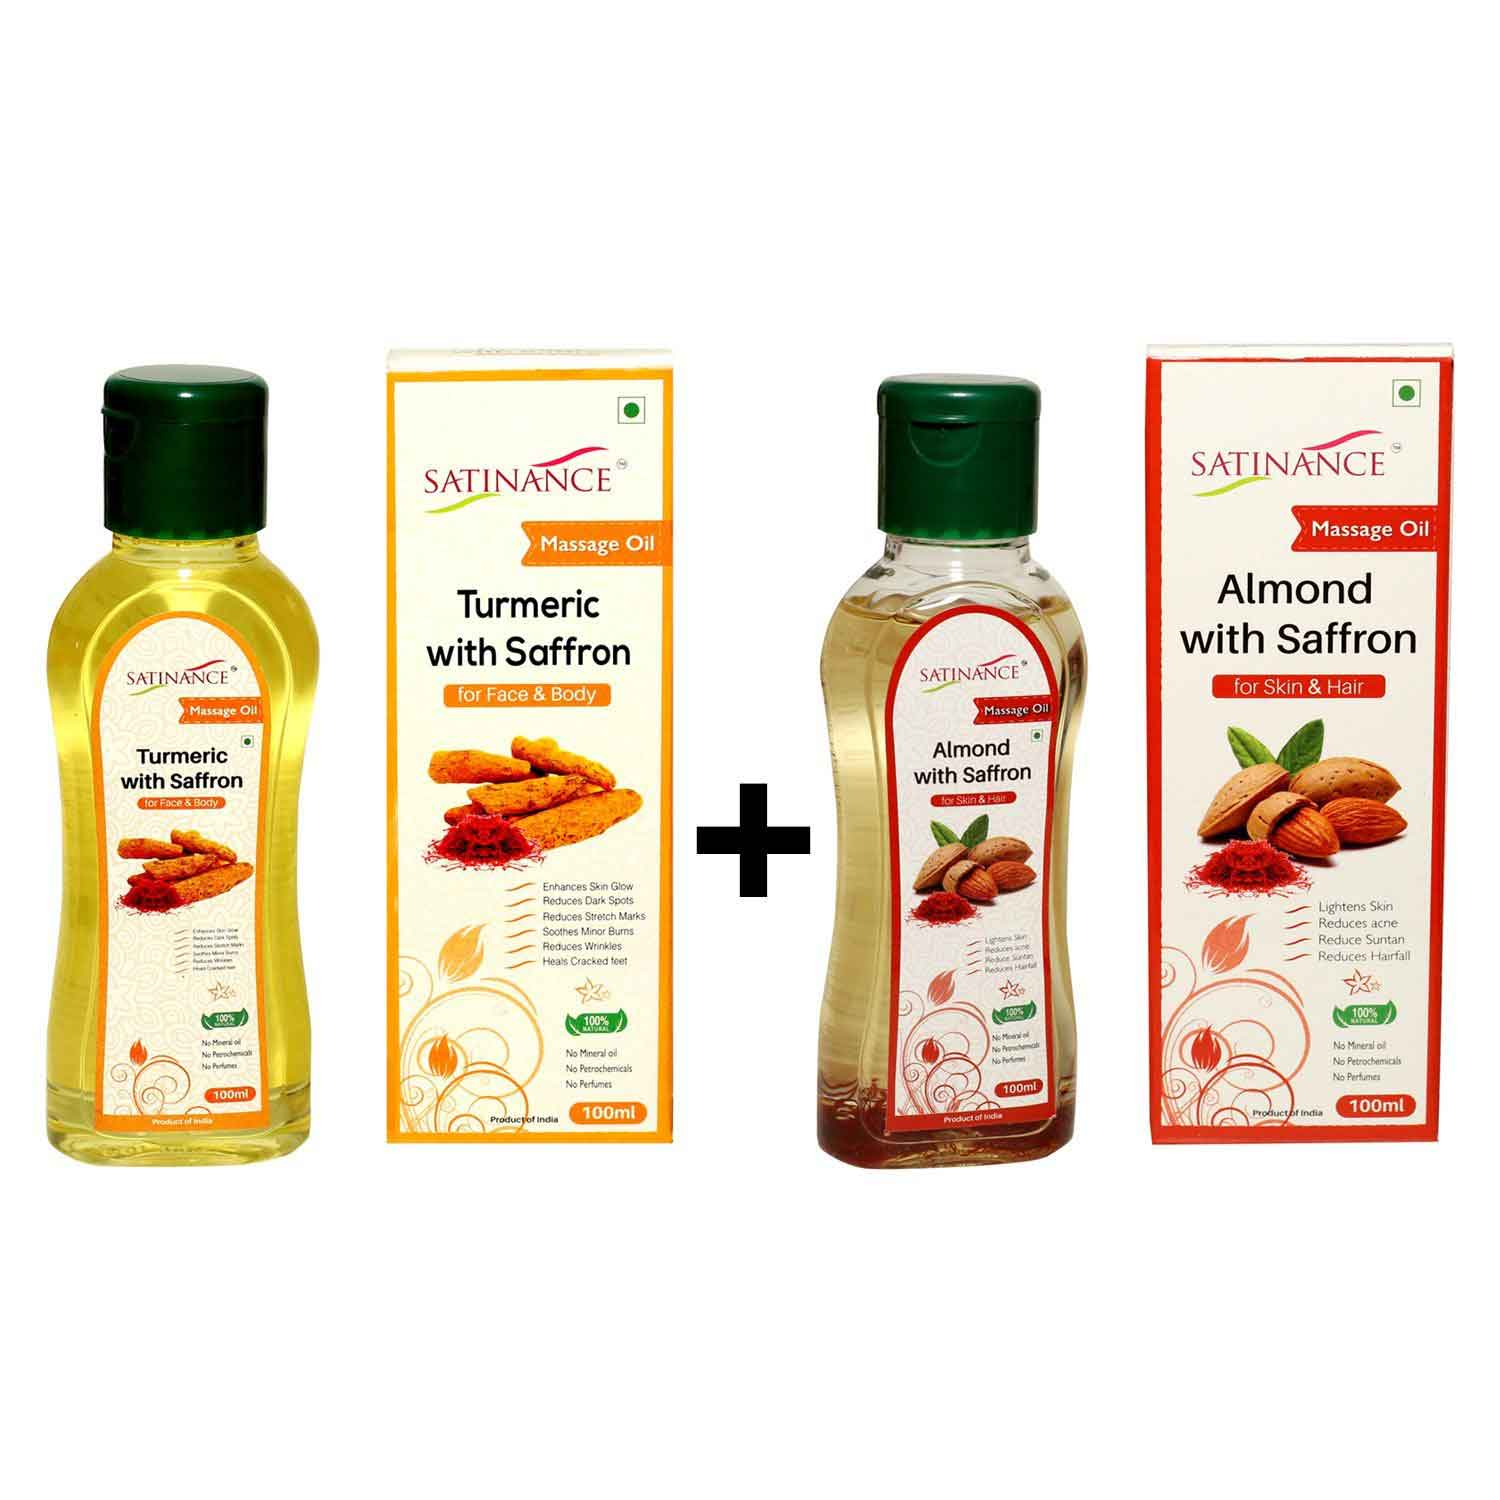 Turmeric with Saffron Massage Oil 100 ml + Almond With Saffron Massage Oil 100 ml